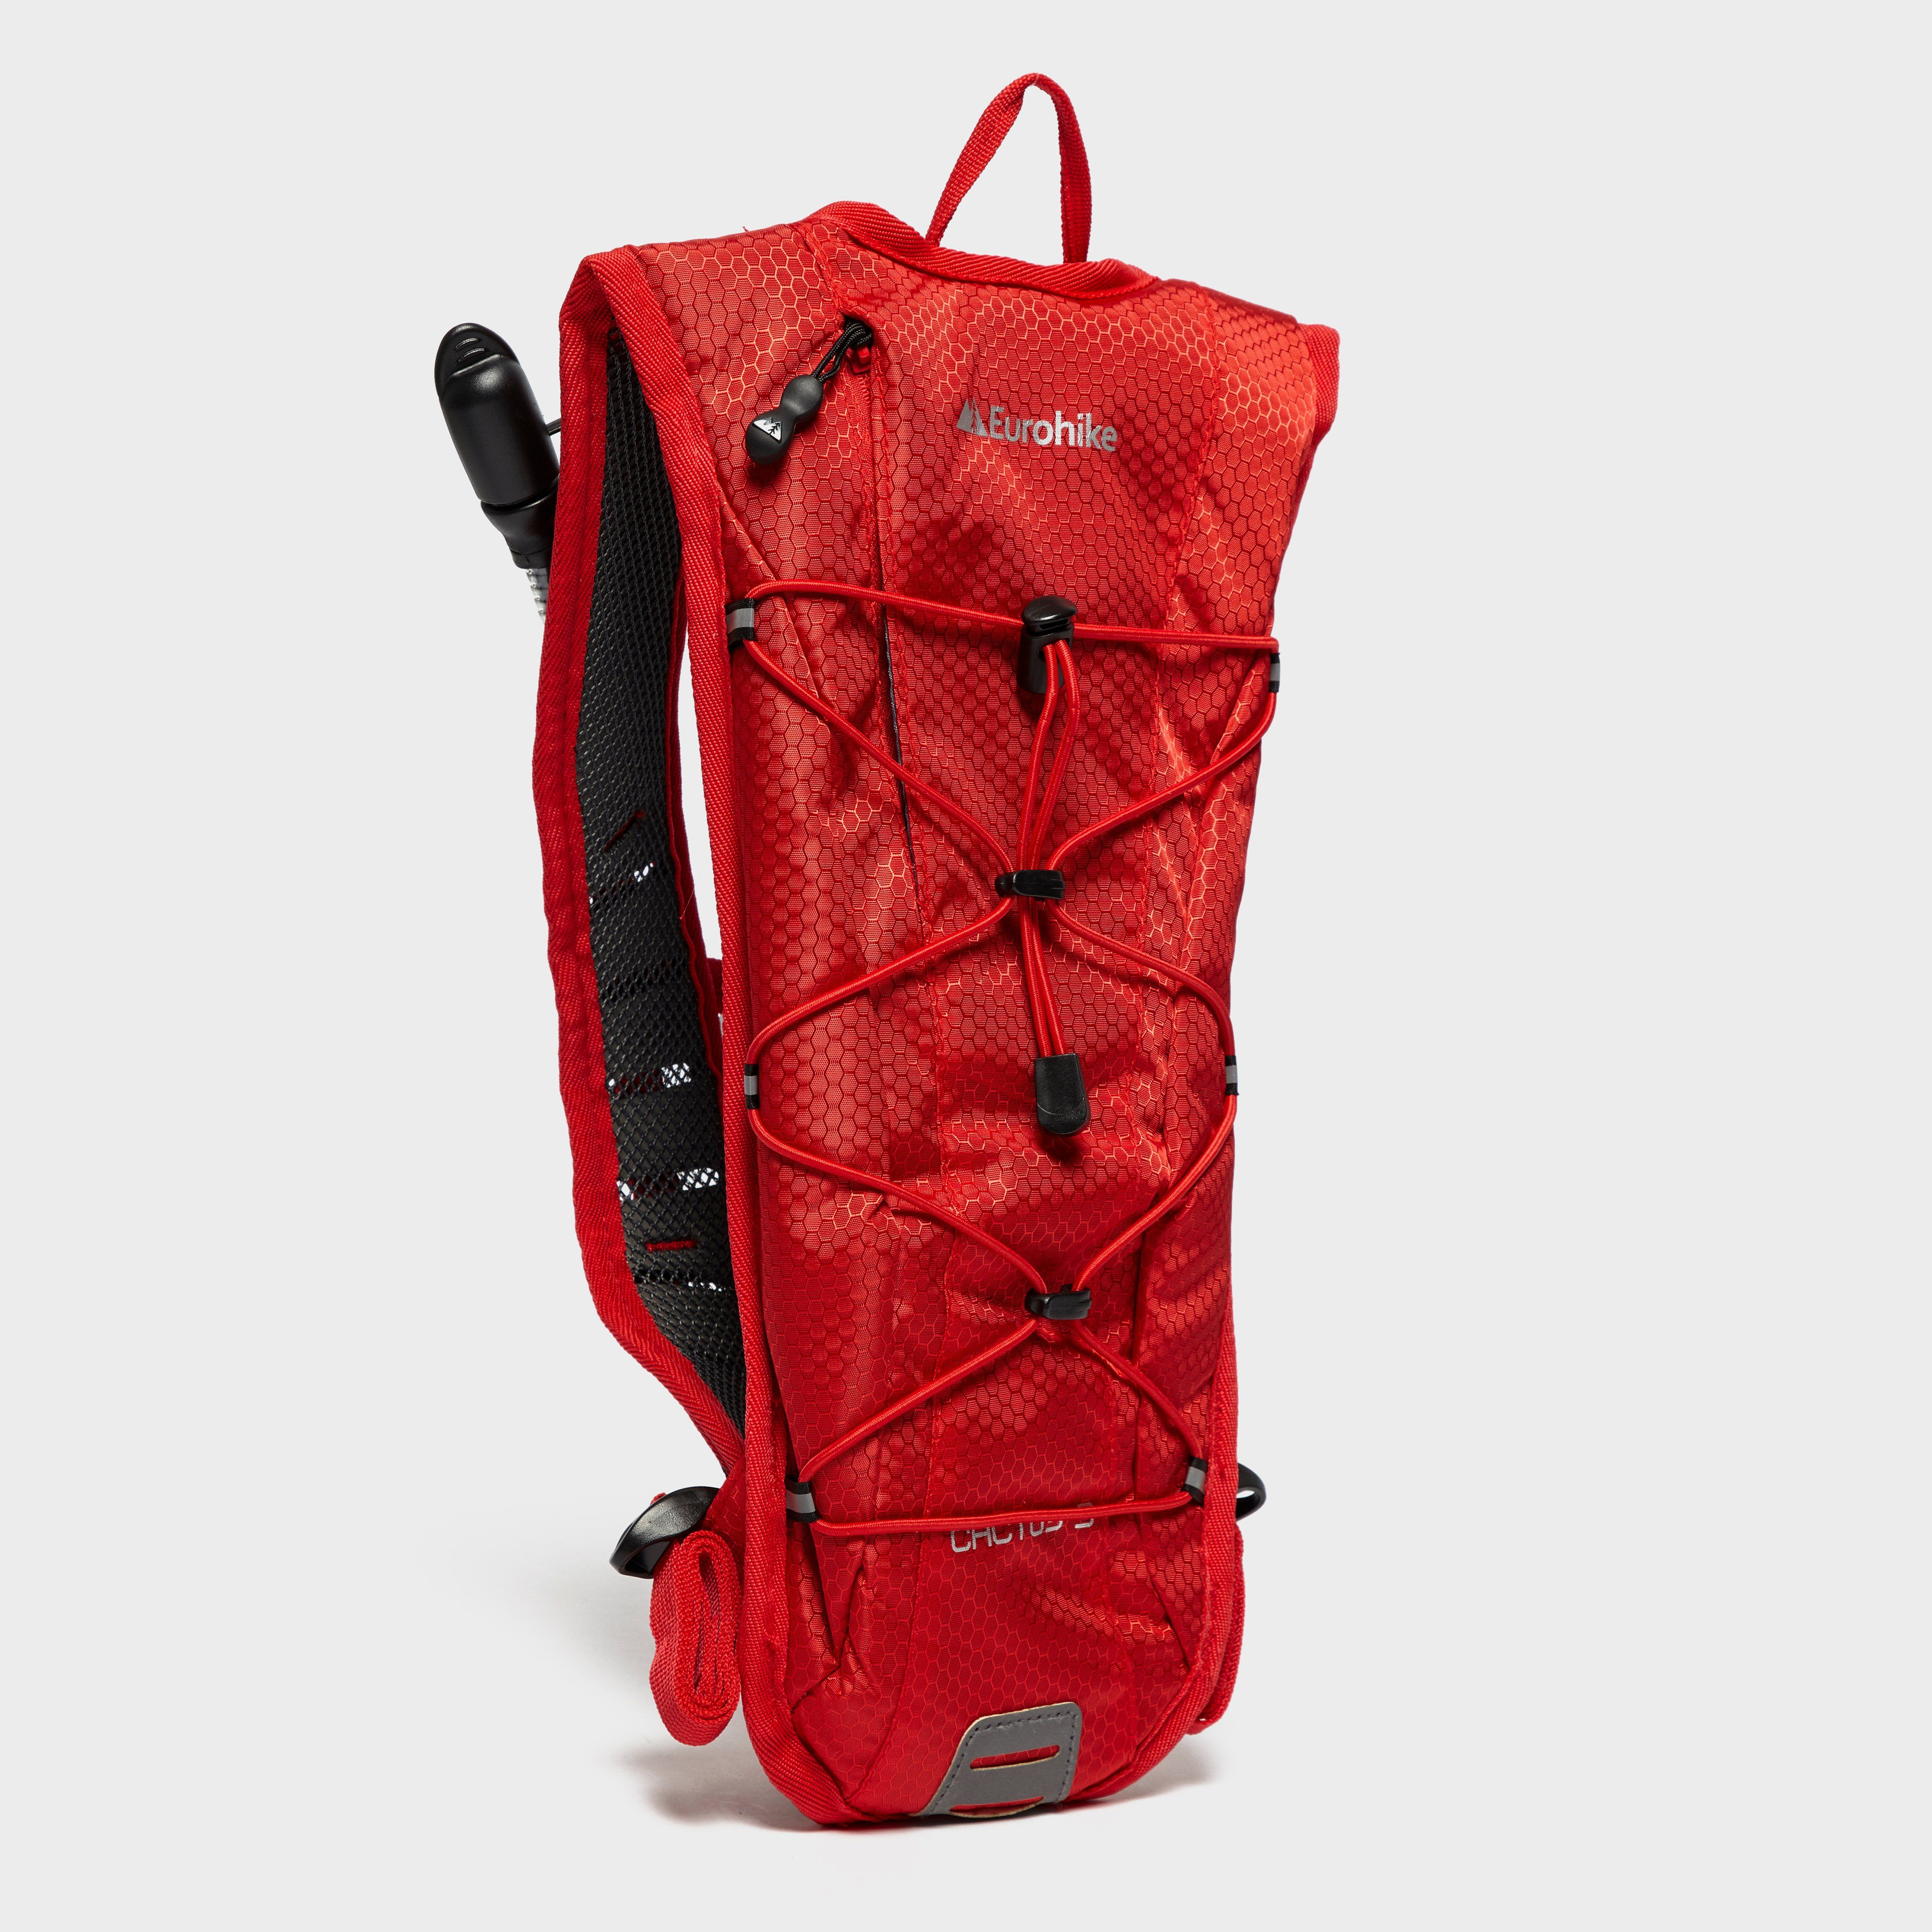 EUROHIKE Cactus 3L Hydration Pack